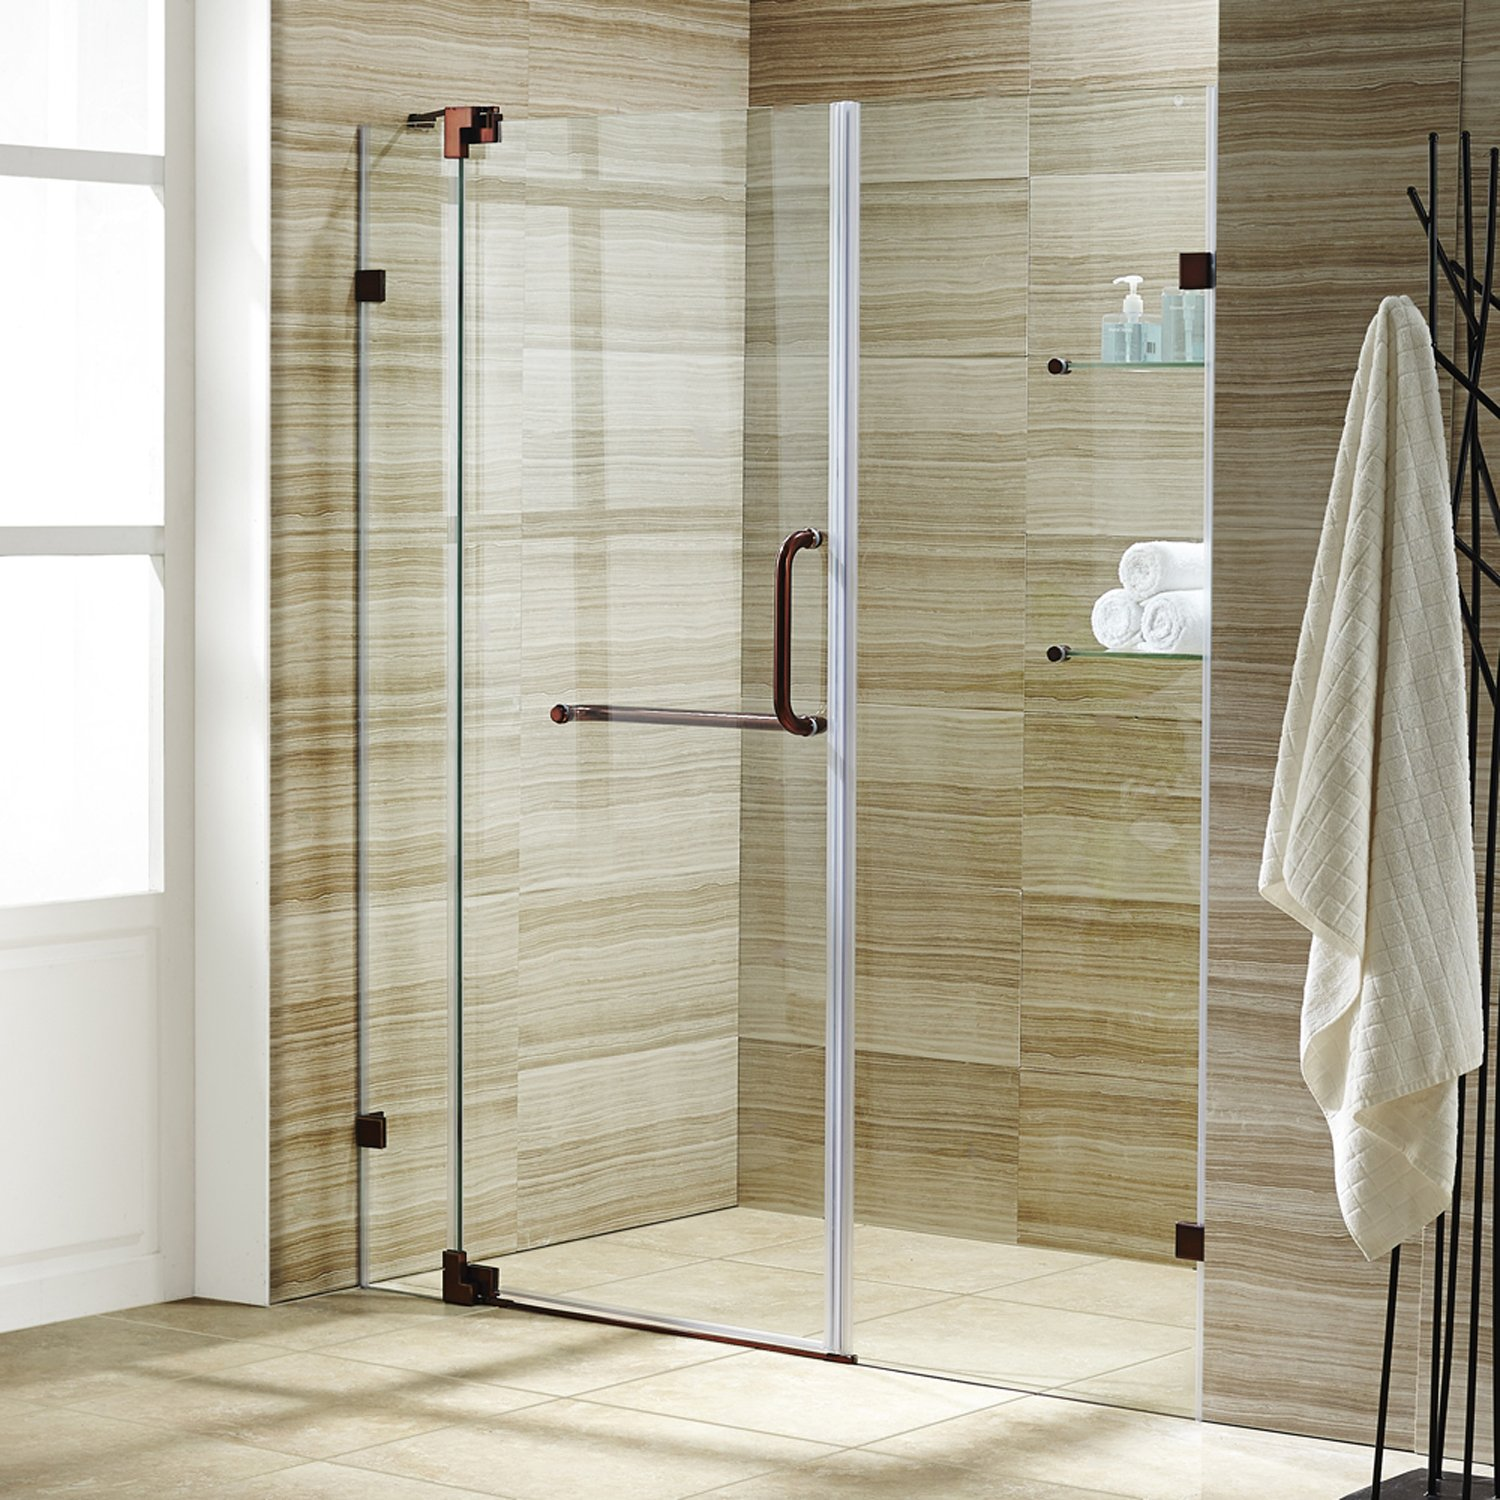 VIGO Pirouette To In Frameless Shower Door With In - Seamless bathroom shower doors